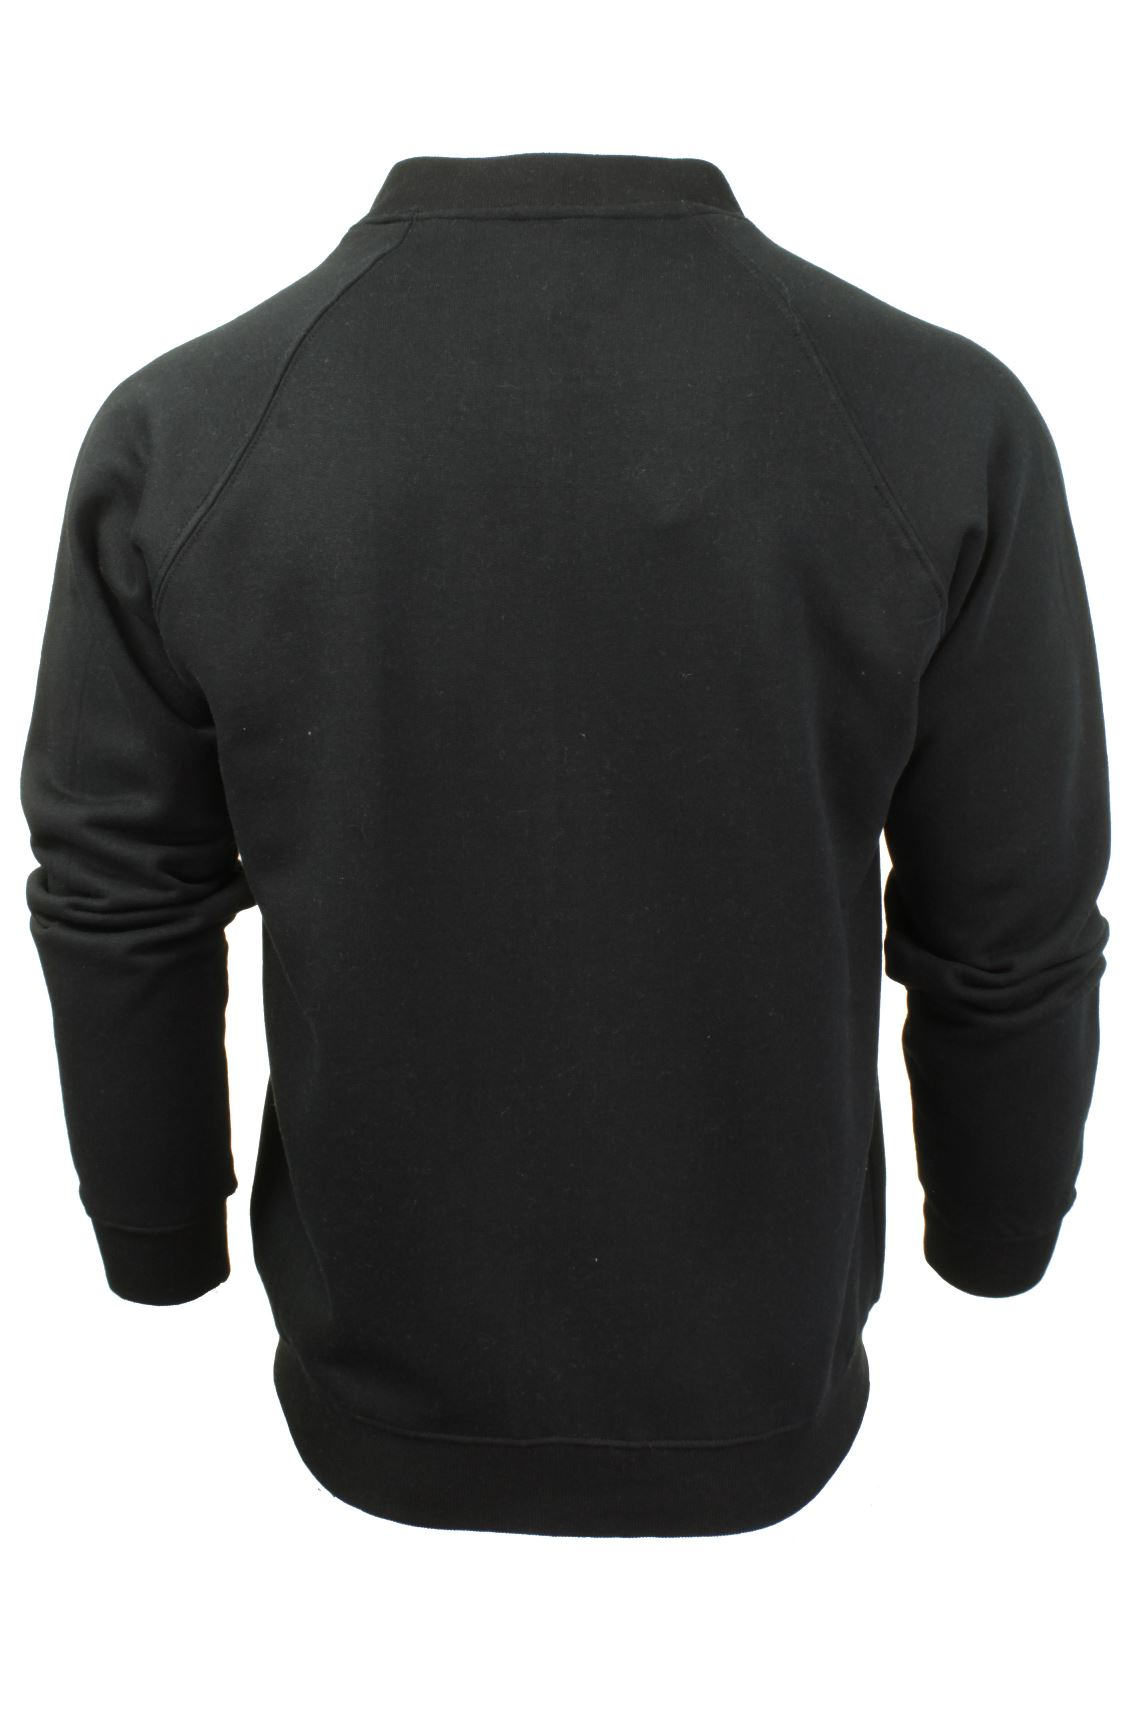 Mens-Zip-Through-Sweatshirt-Jumper-by-Xact-Long-Sleeved thumbnail 5